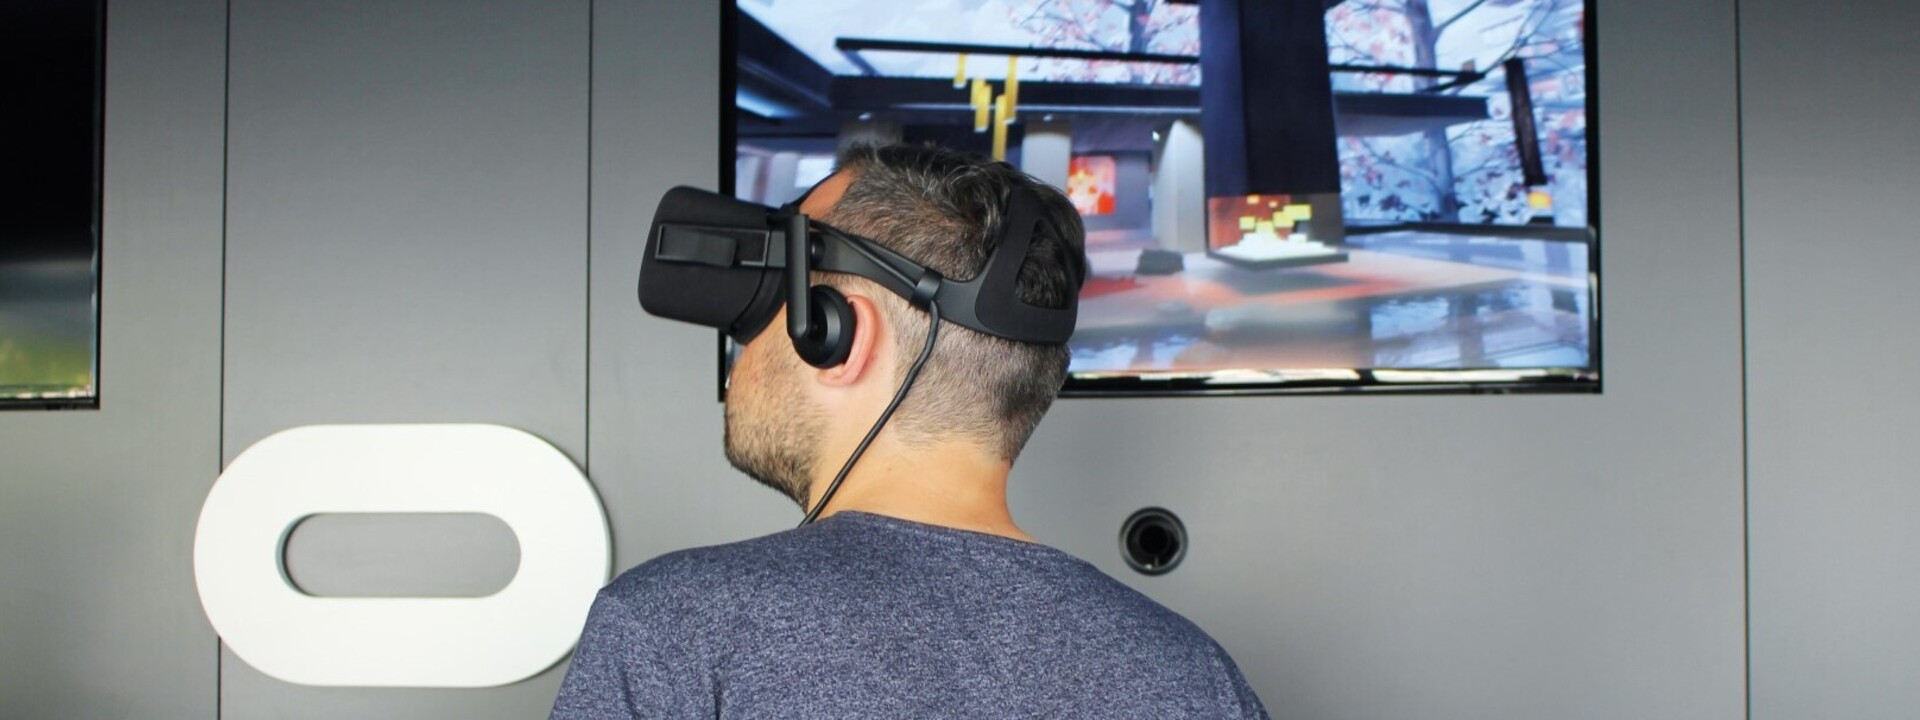 oculus-showtruck-4-user.jpg